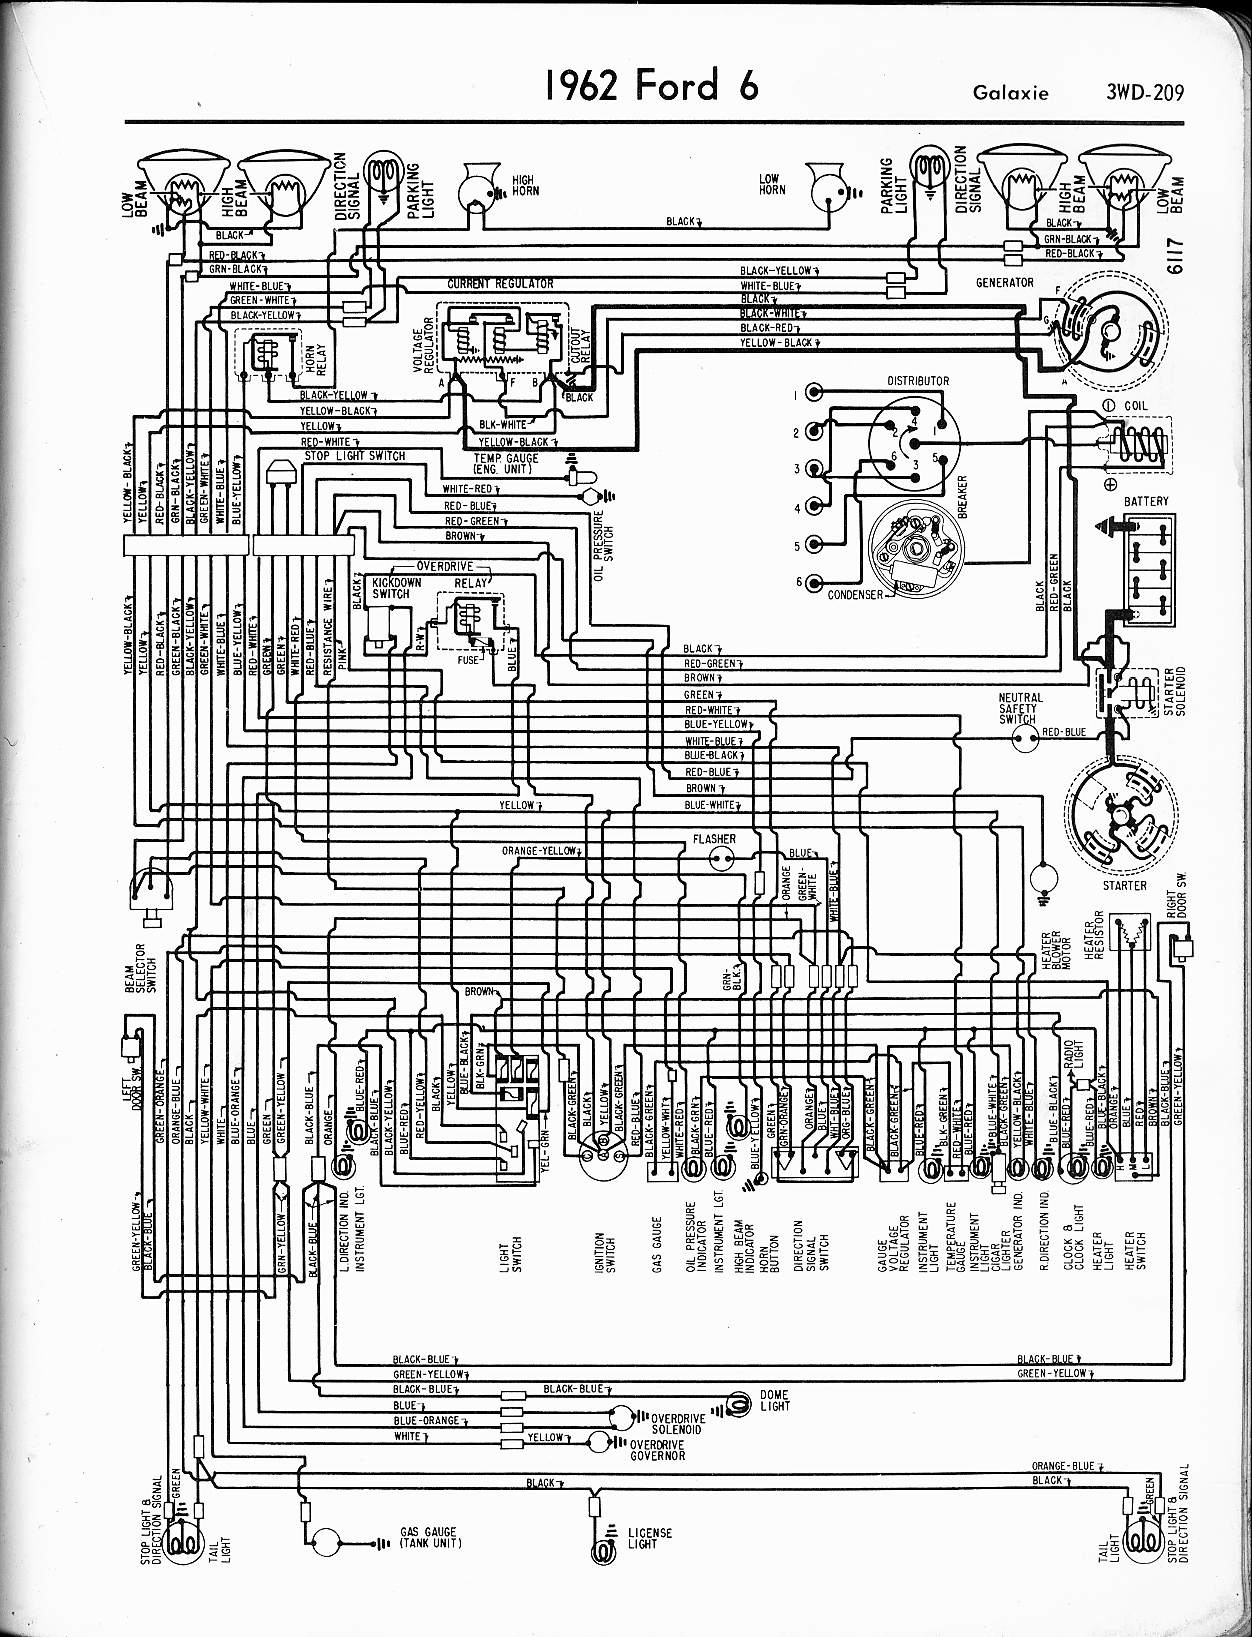 Mwire on 1956 ford fairlane wiring harness diagram